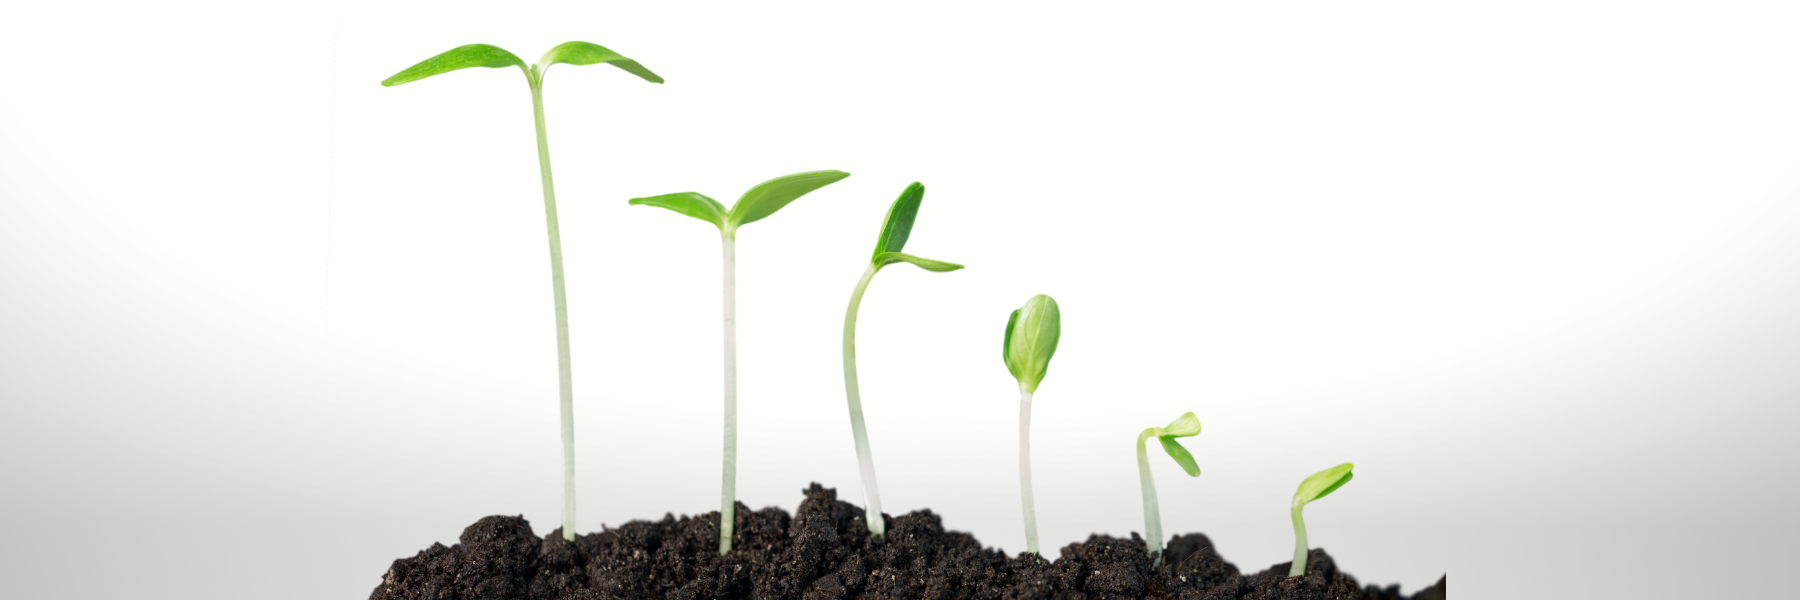 a seedling growing through 6 stages out of soil from right to left as a symbol of growing your people with online training